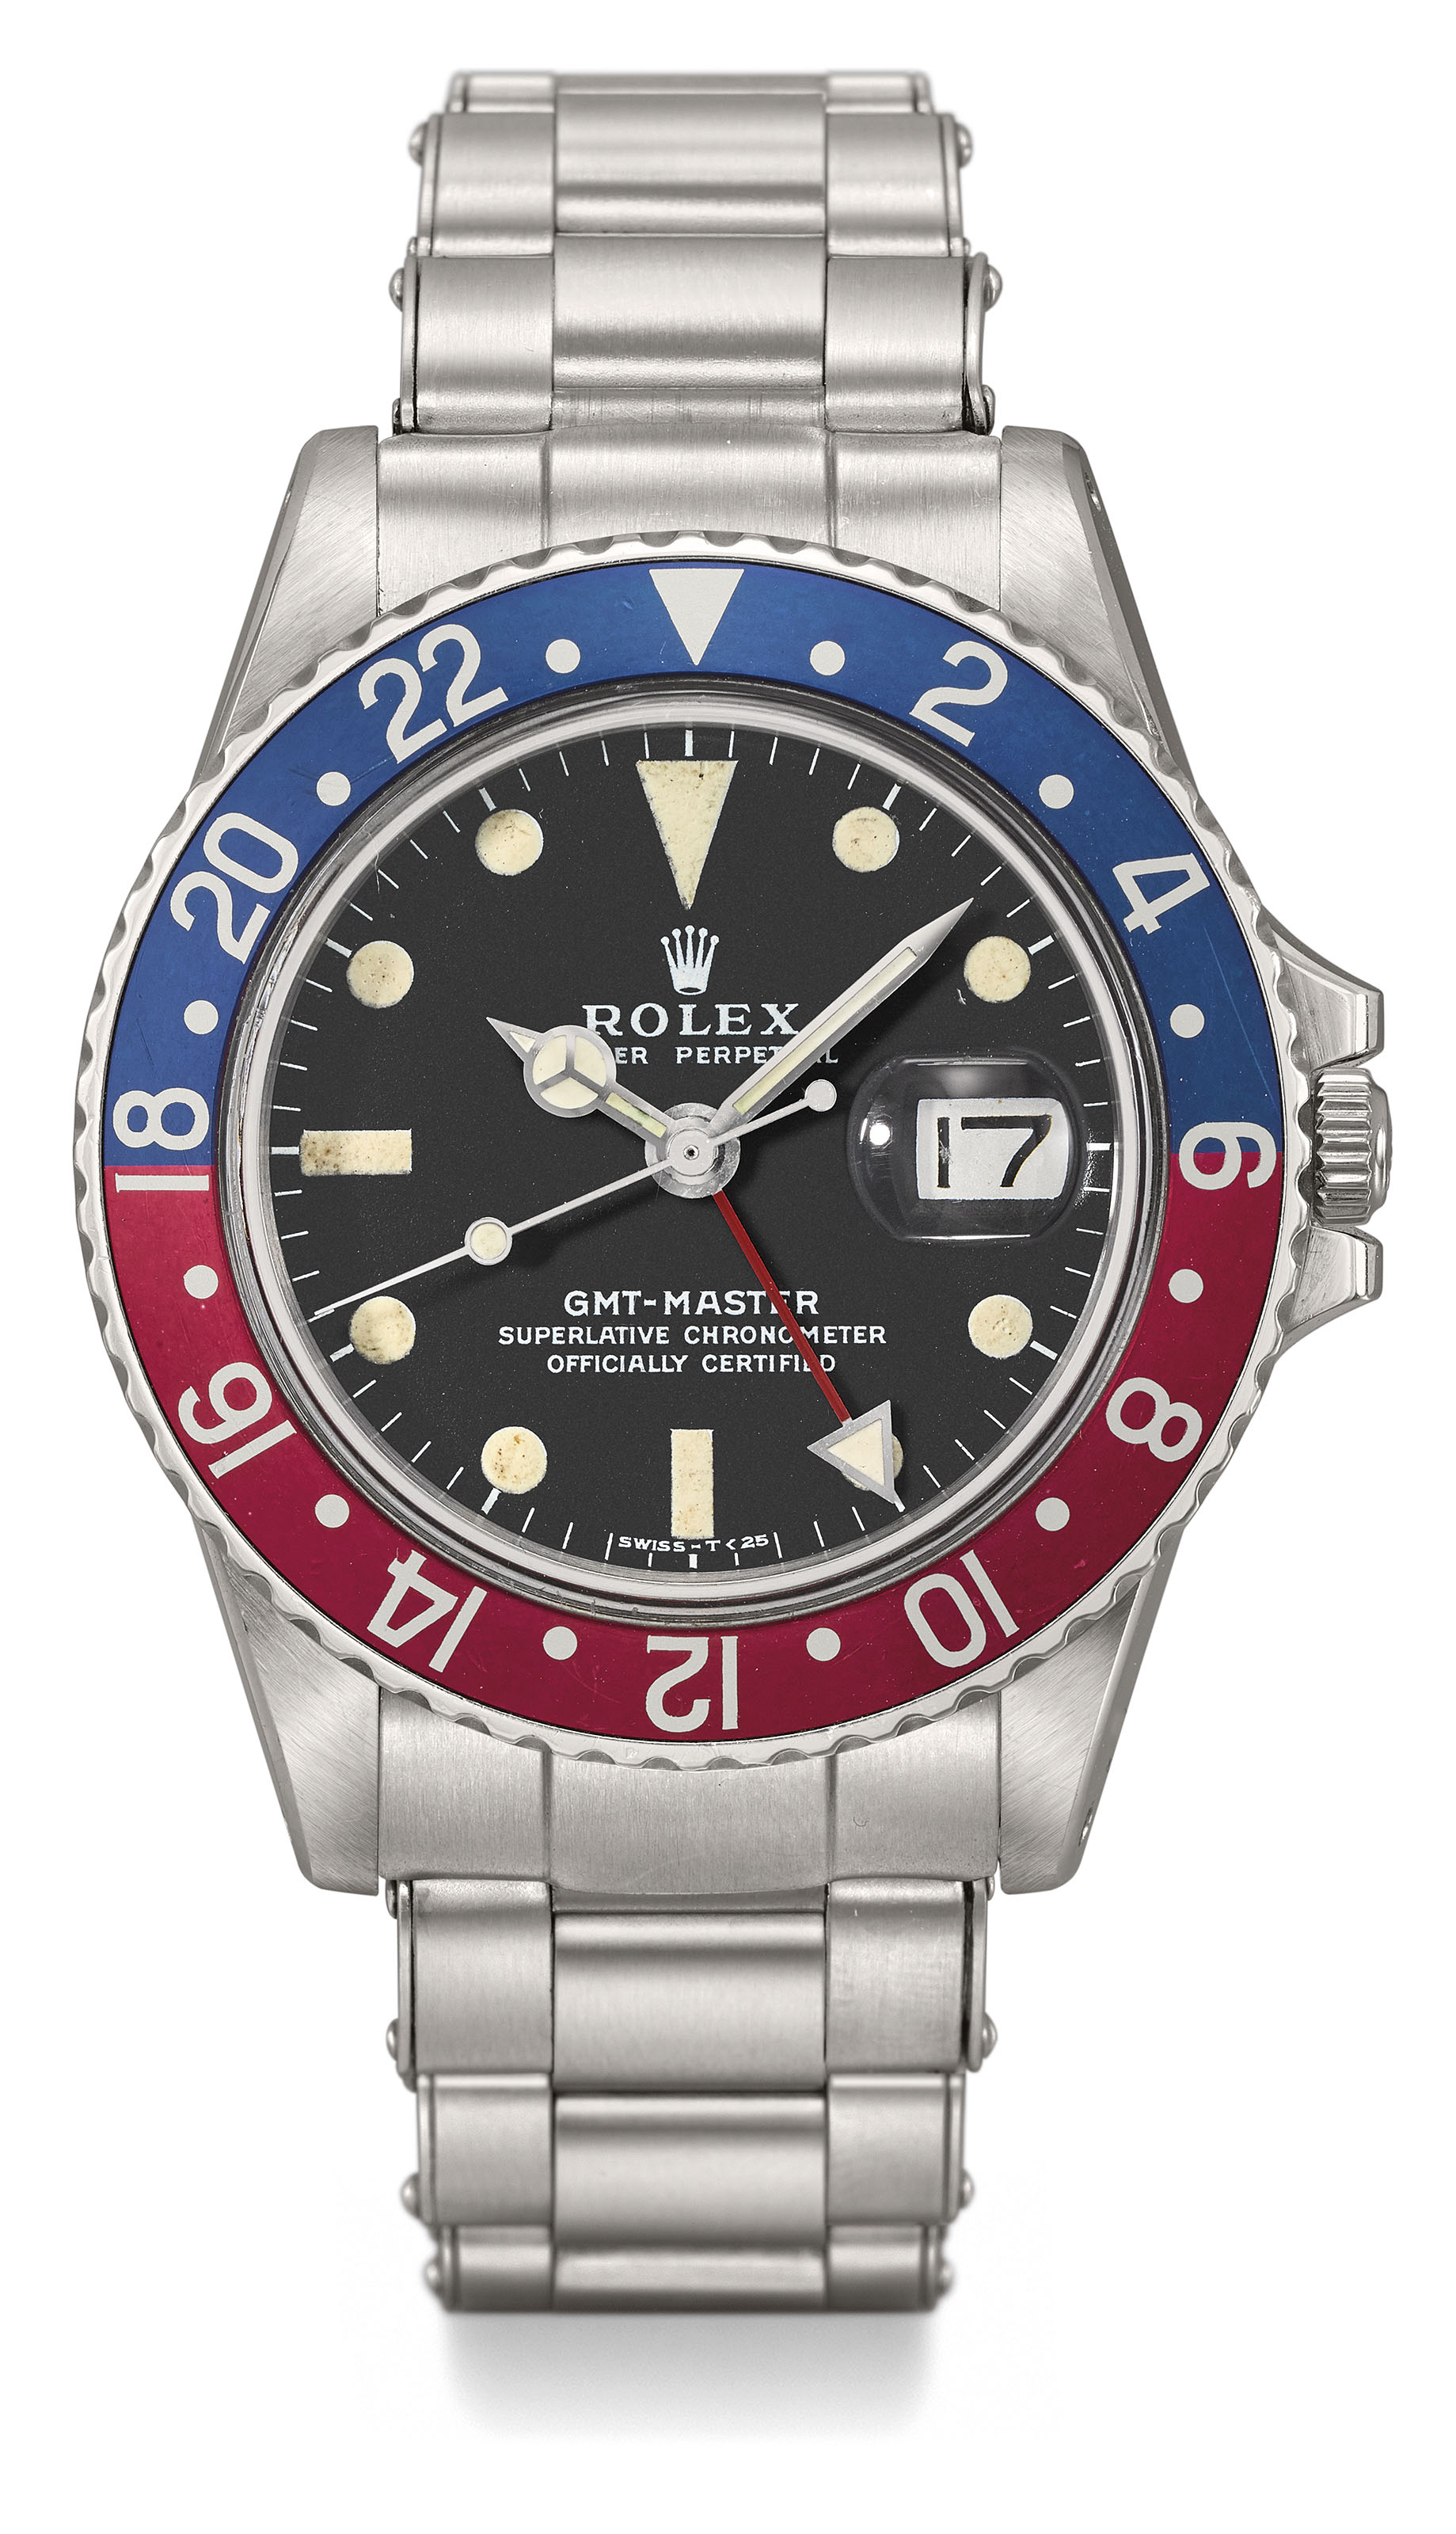 ROLEX. A VERY FINE AND EXTREMLY RARE STAINLESS STEEL DUAL TIME AUTOMATIC...